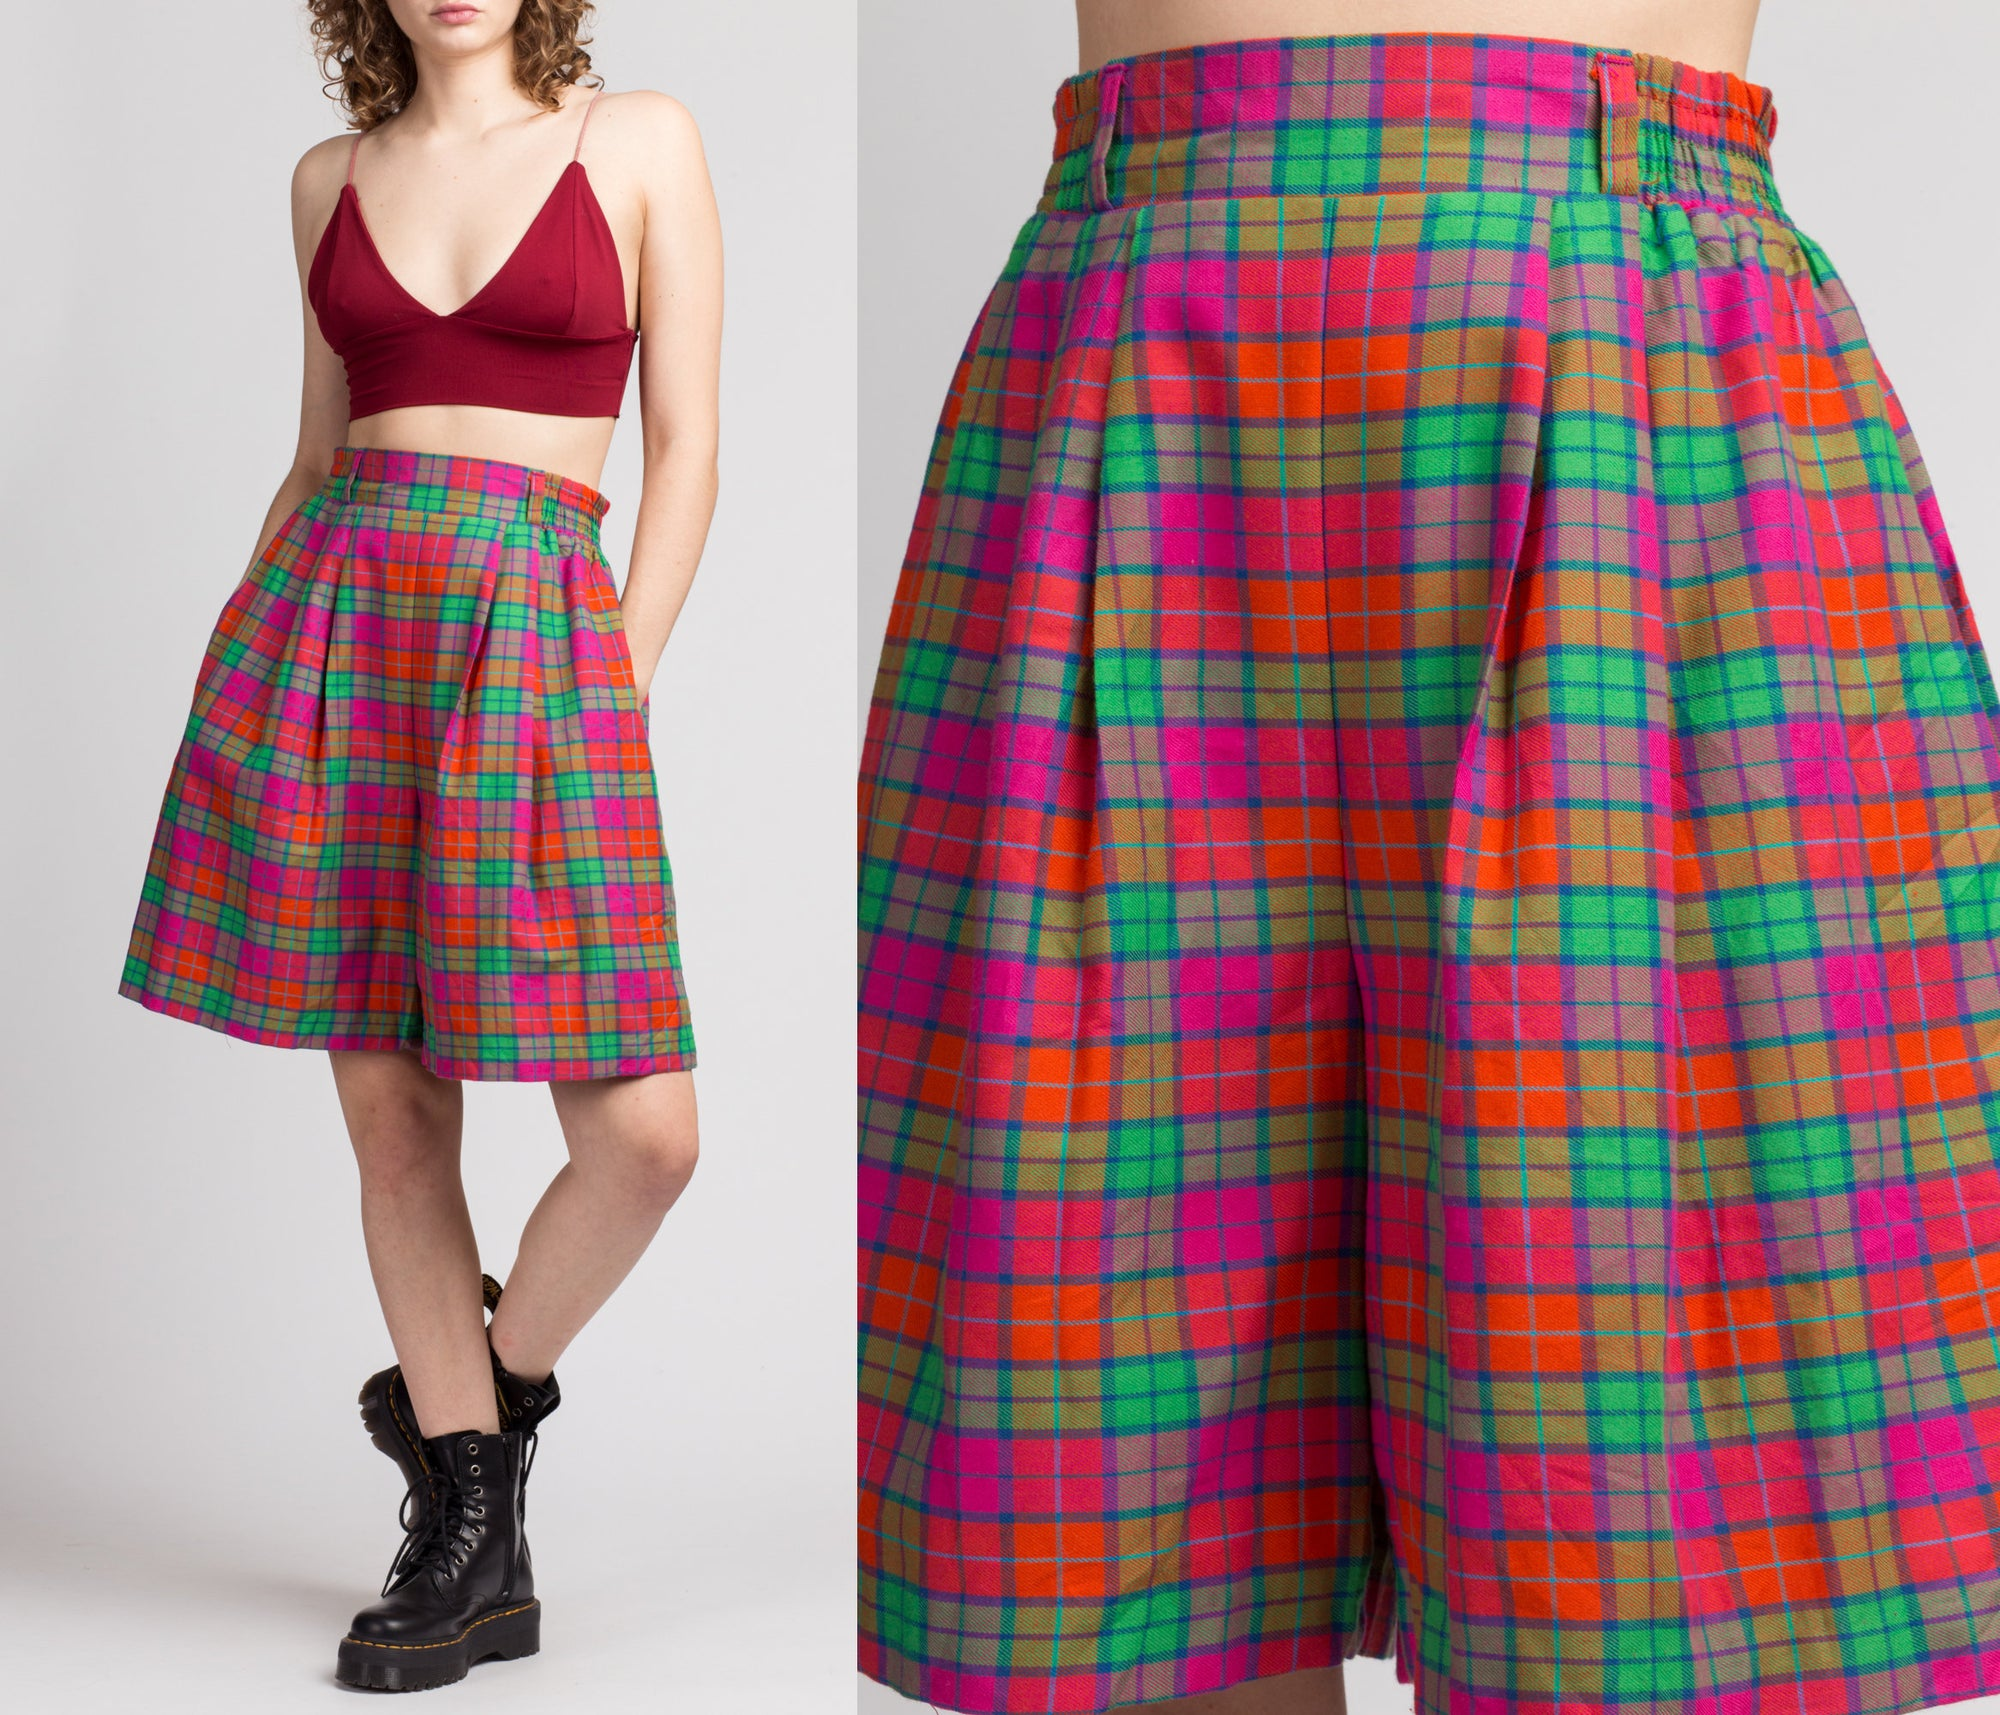 80s Plaid High Waist Shorts - Medium to Large